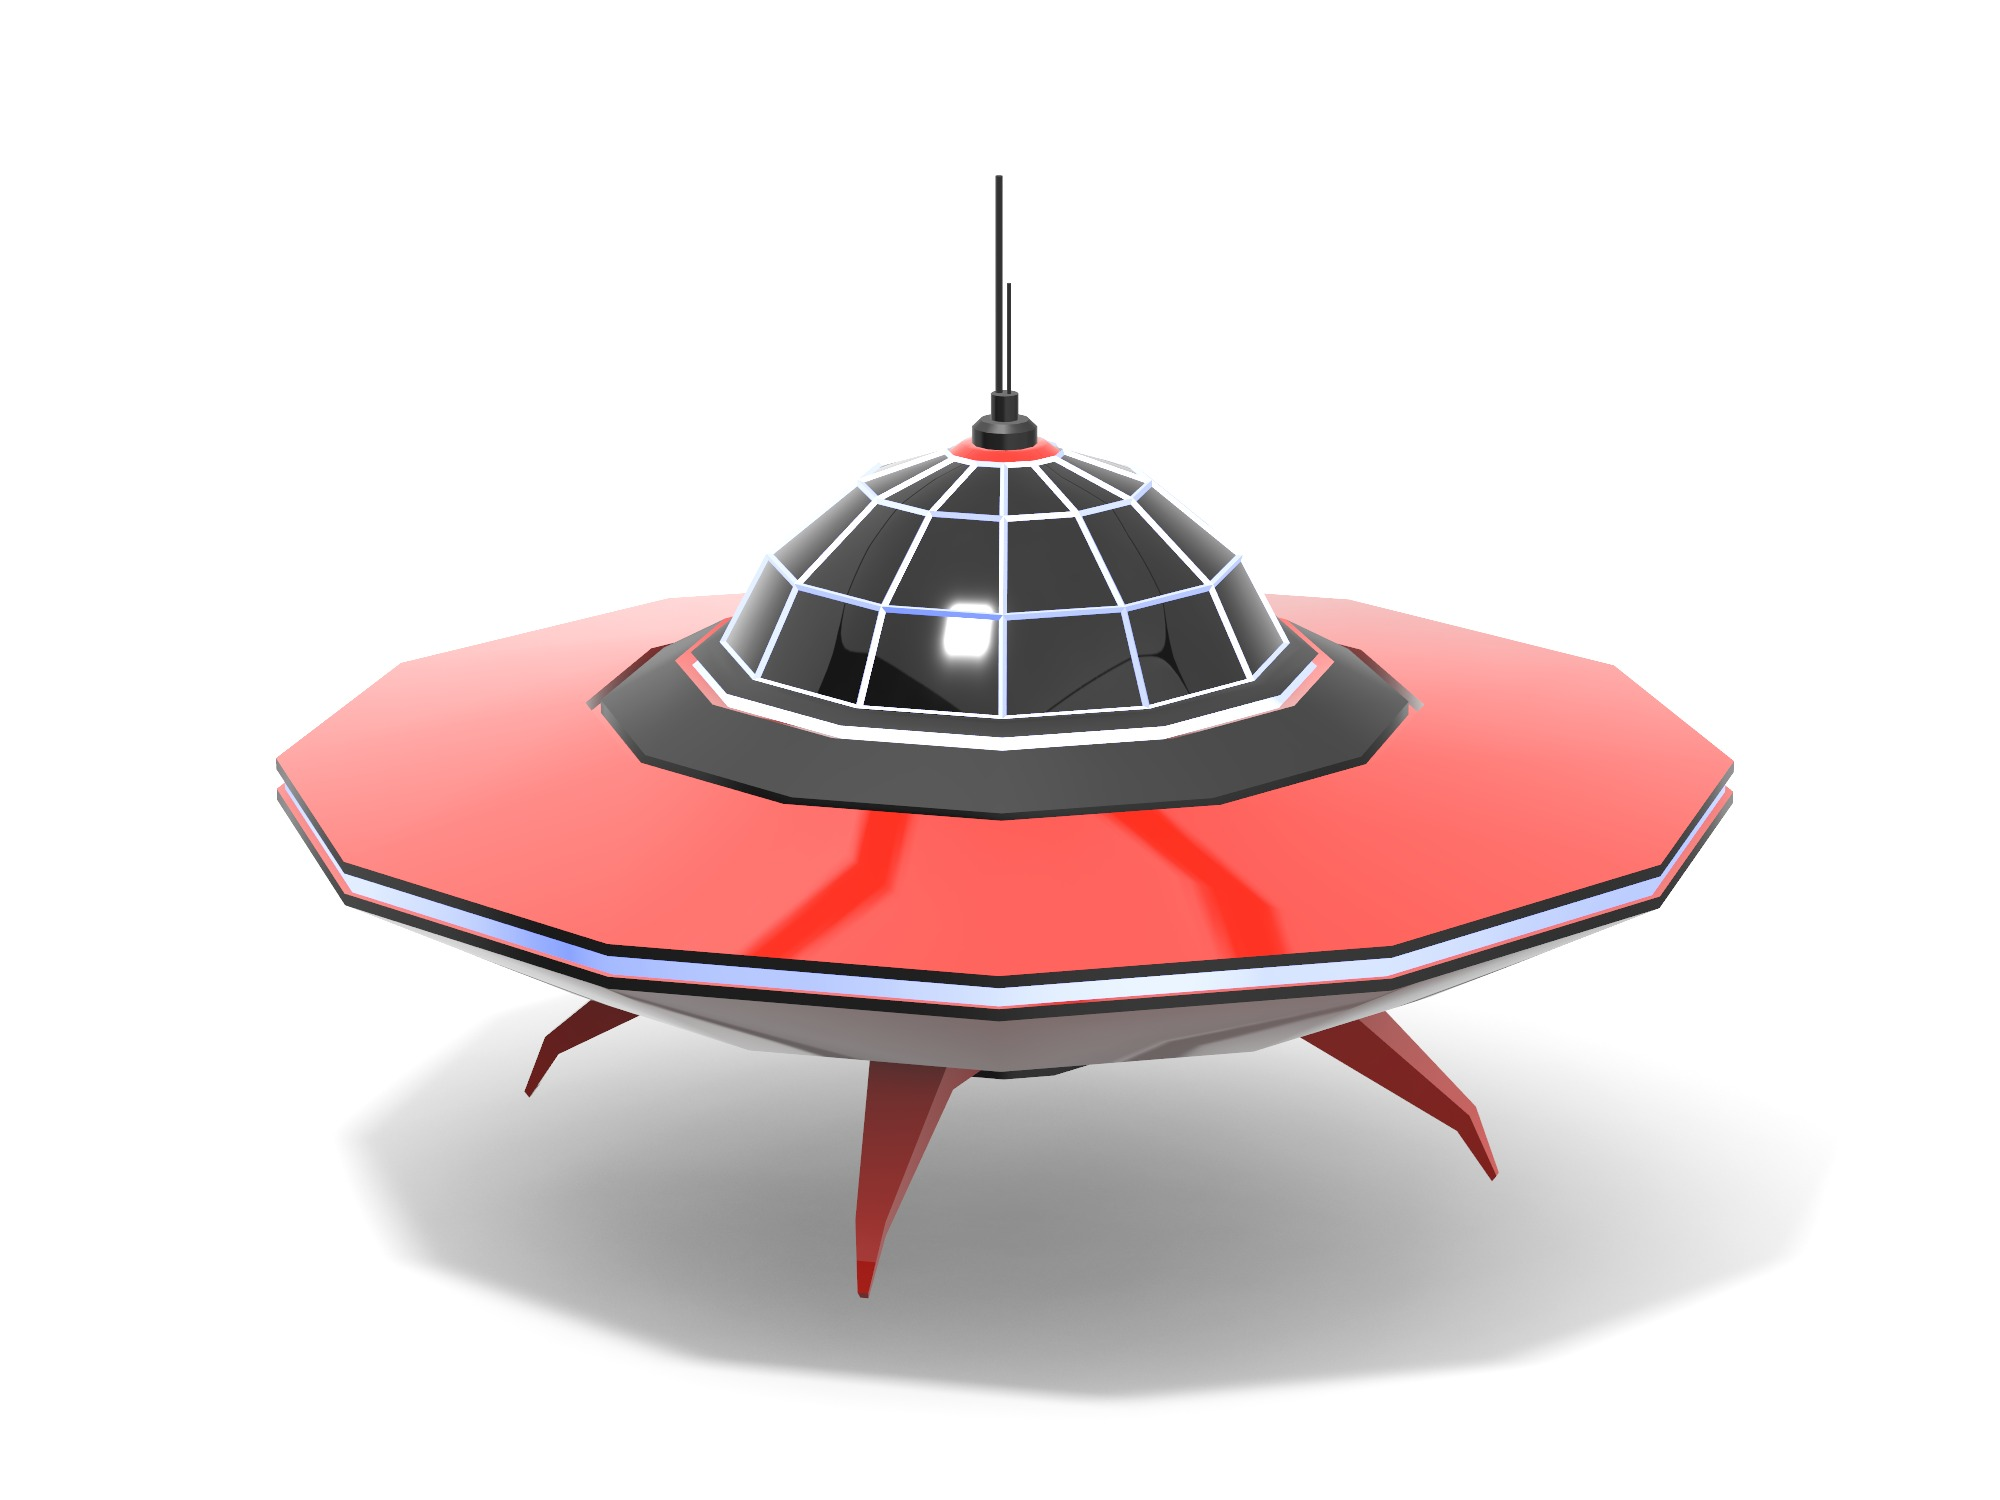 Flying Saucer - 3D design by Vectary assets Jun 3, 2019